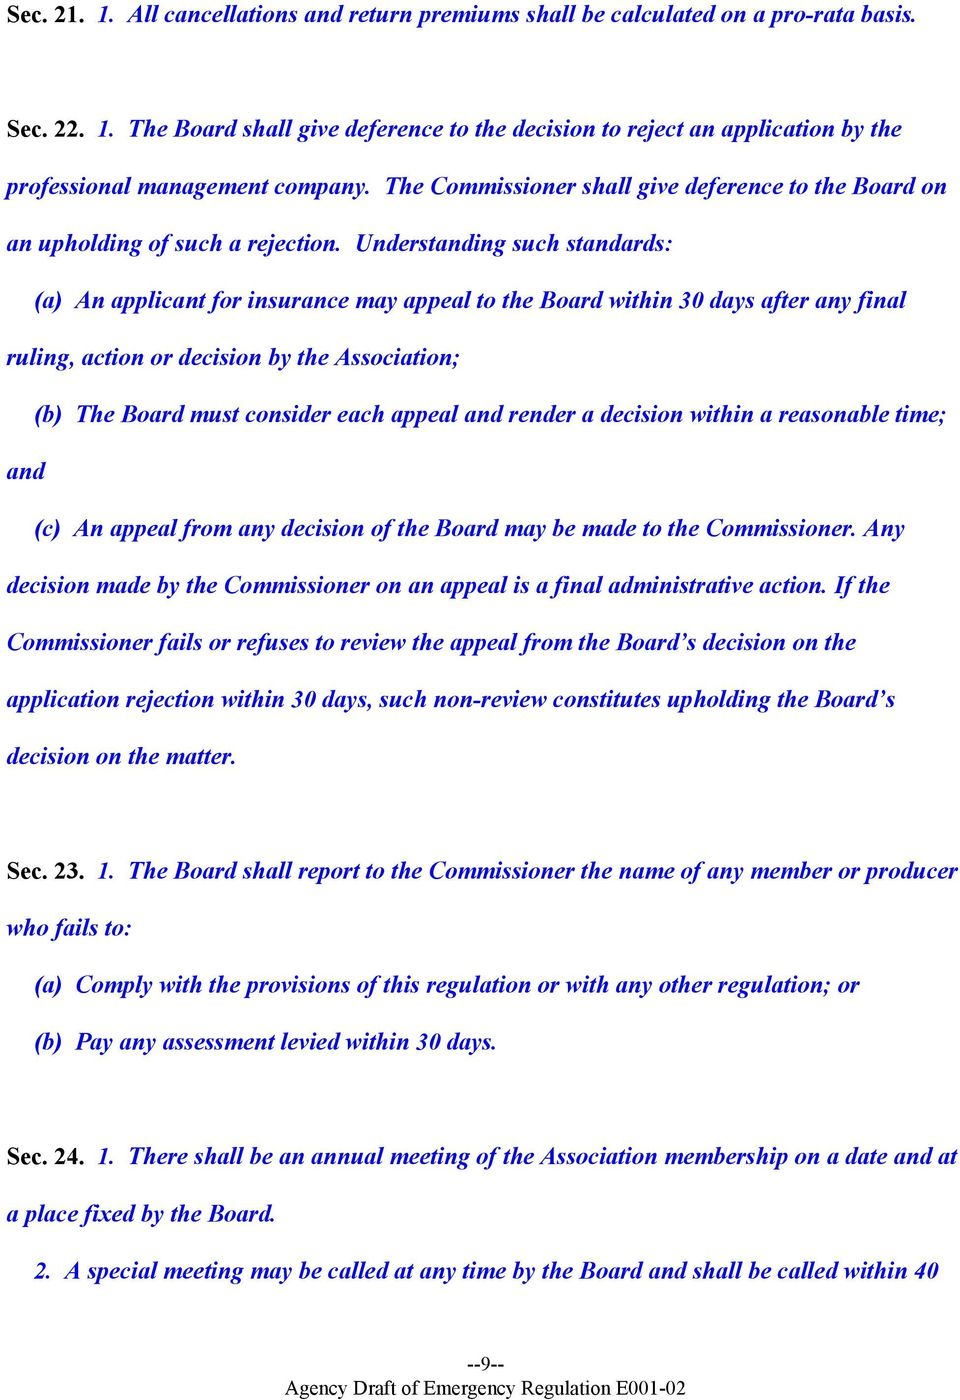 Understanding such standards: (a) An applicant for insurance may appeal to the Board within 30 days after any final ruling, action or decision by the Association; (b) The Board must consider each